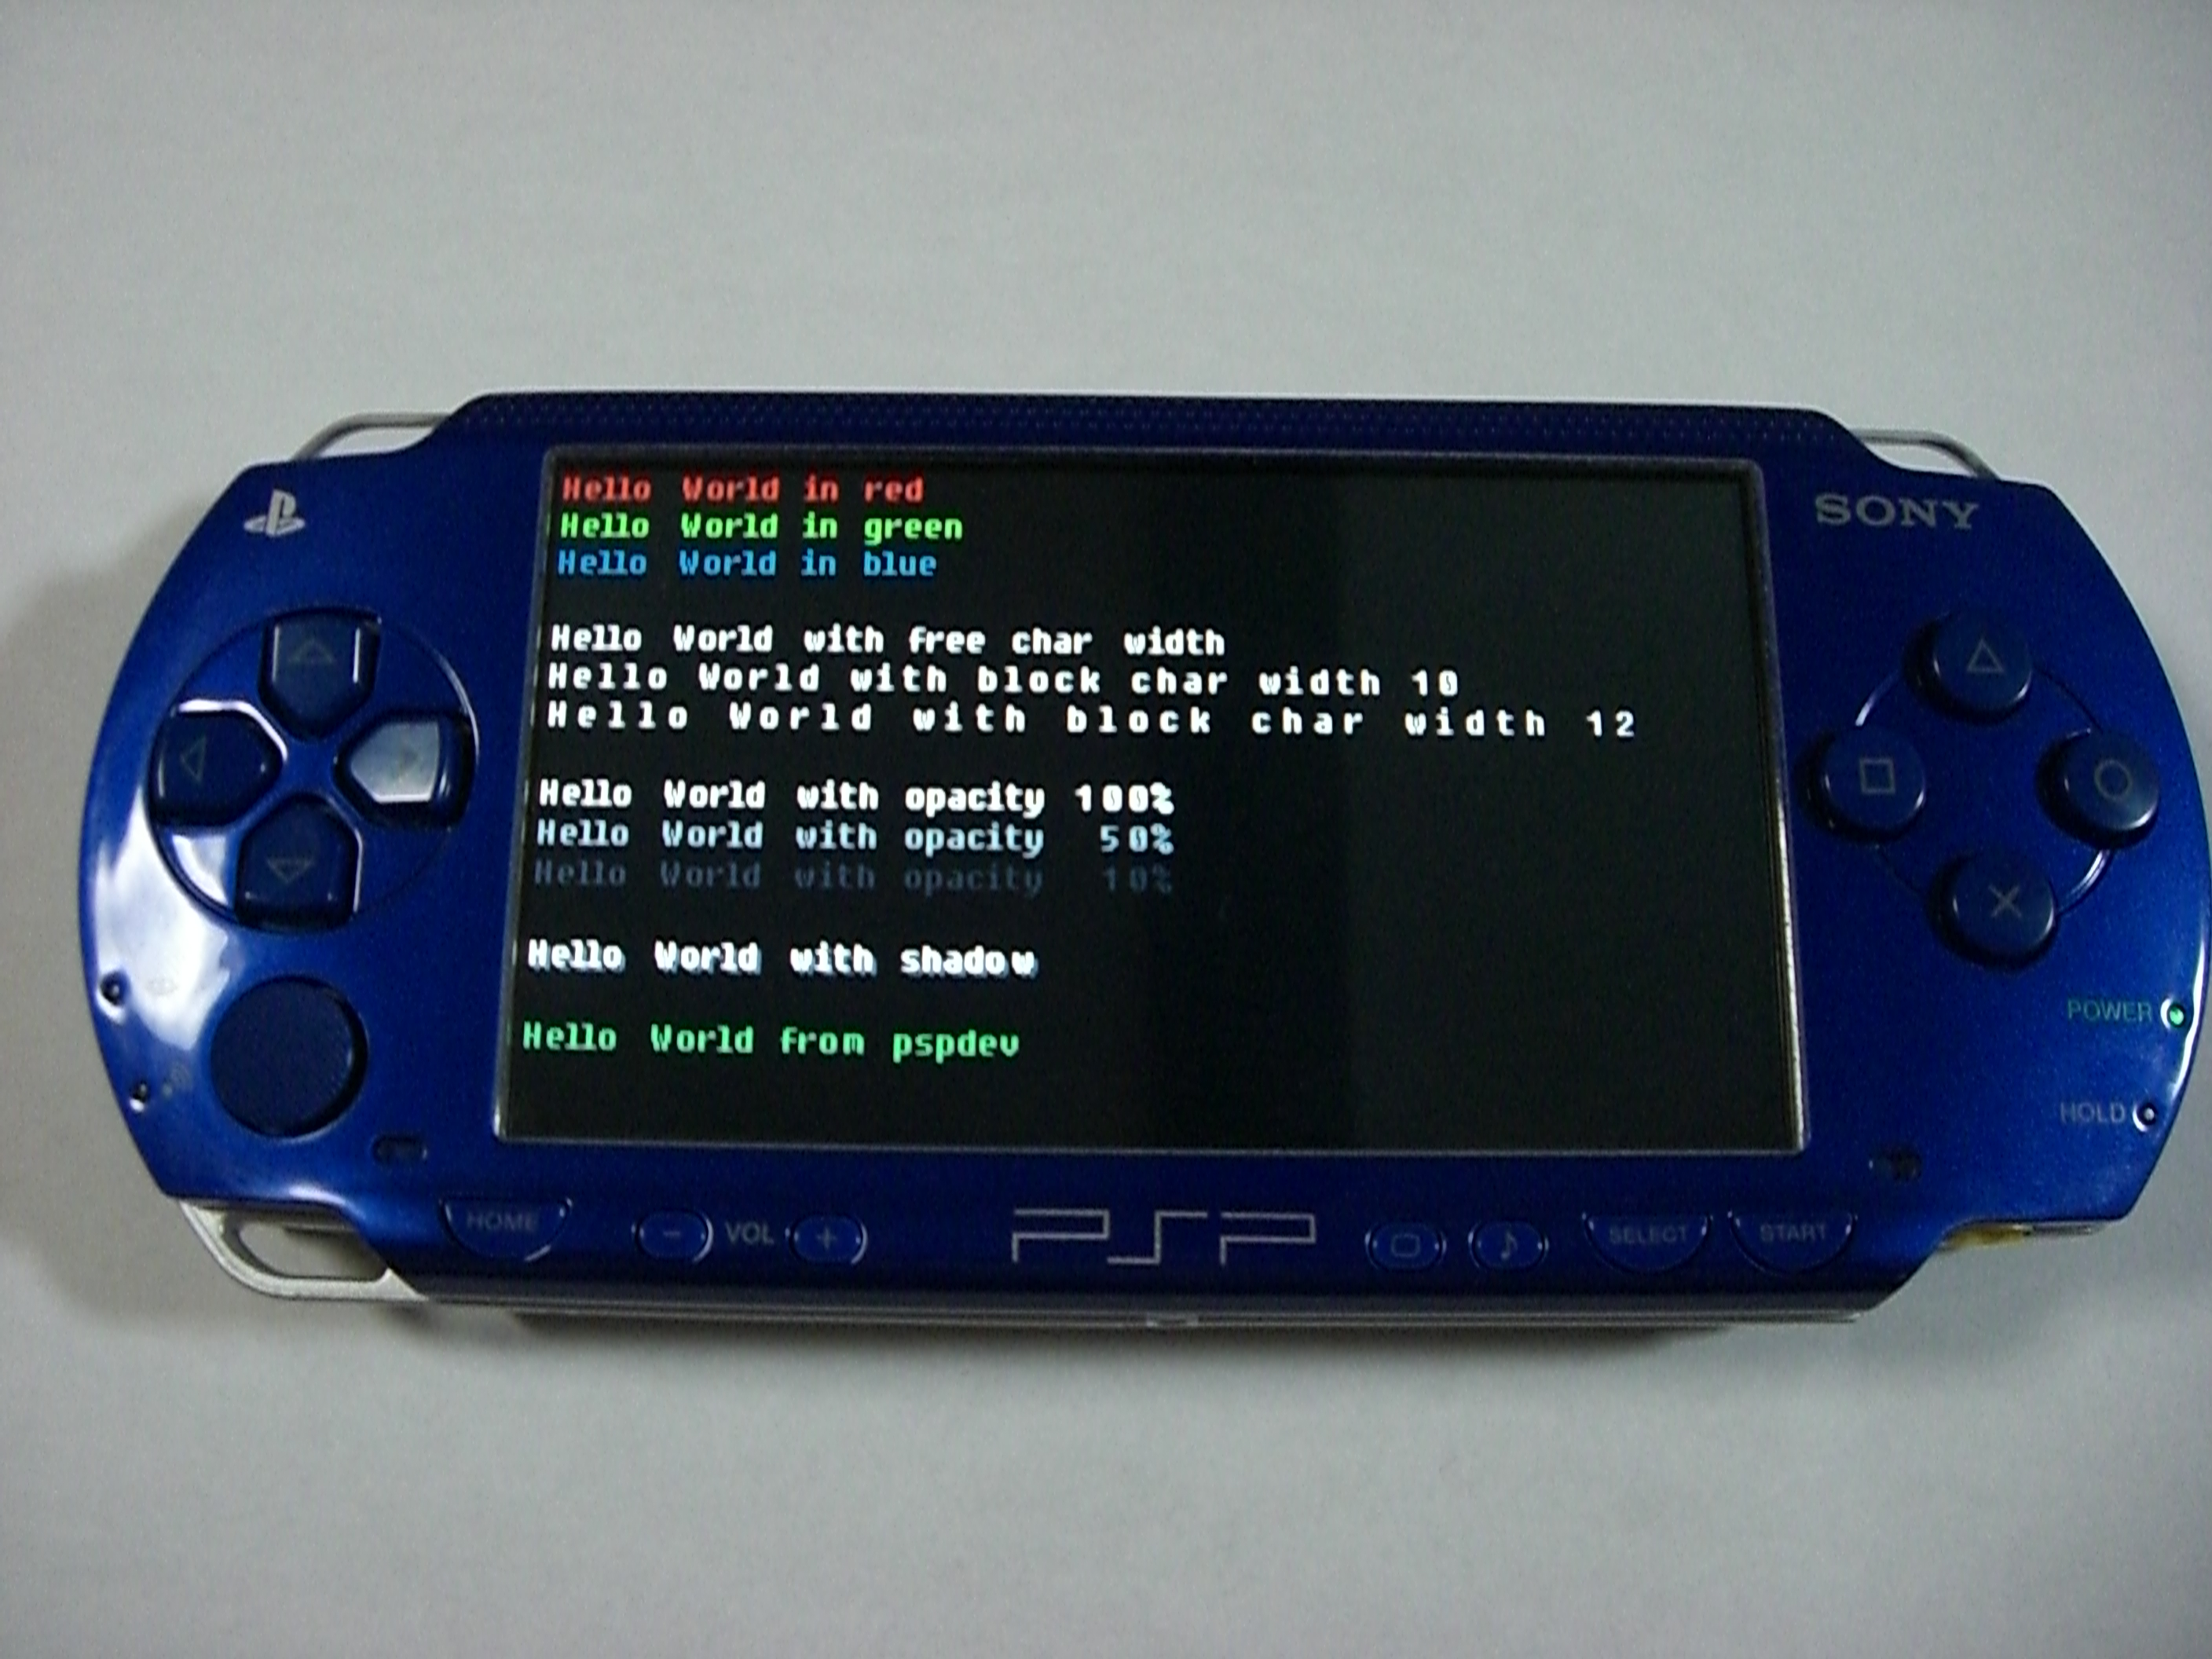 PlayStation Portable homebrew - Wikipedia